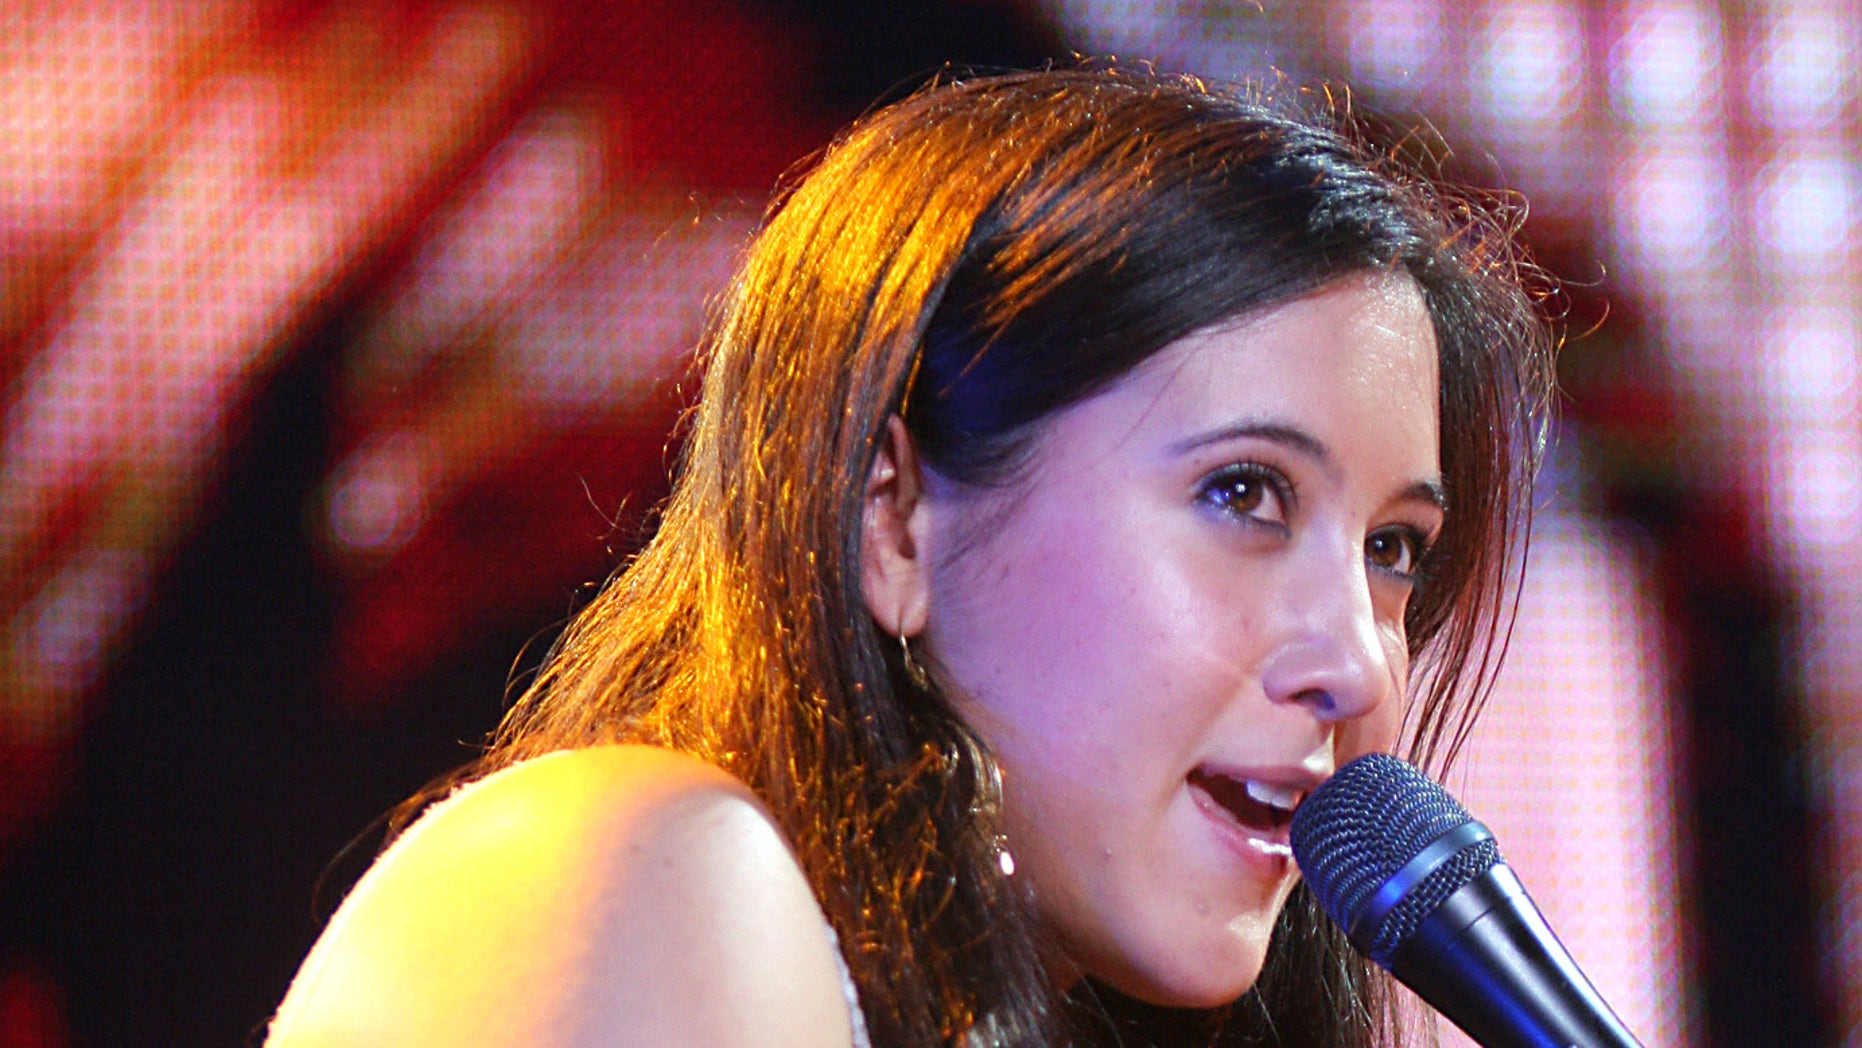 December 10, 2004. Singer Vanessa Carlton performs during Z100's Jingle Ball 2004 concert at Madison Square Garden, in New York.